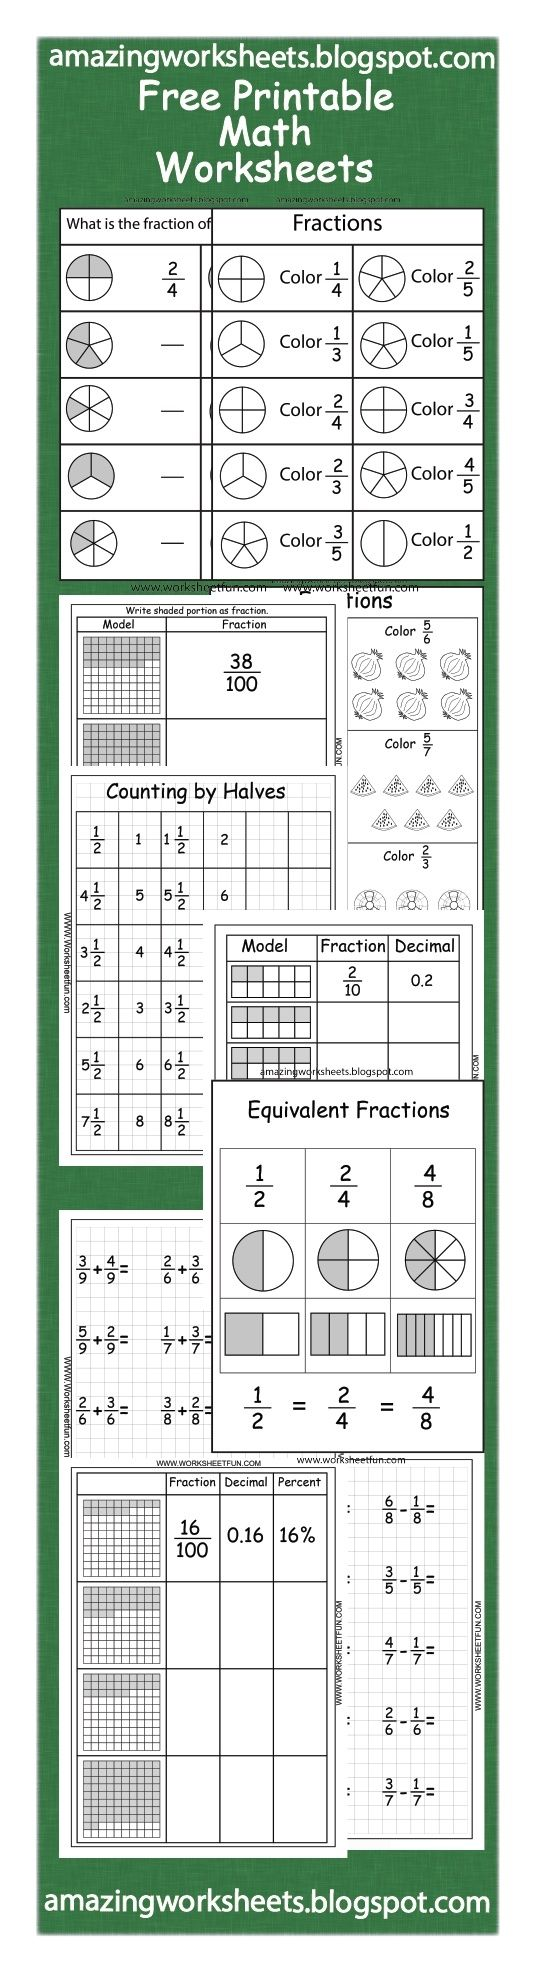 Free Printable Fractions Worksheets Fractions Math Fractions Education Math [ 1973 x 537 Pixel ]